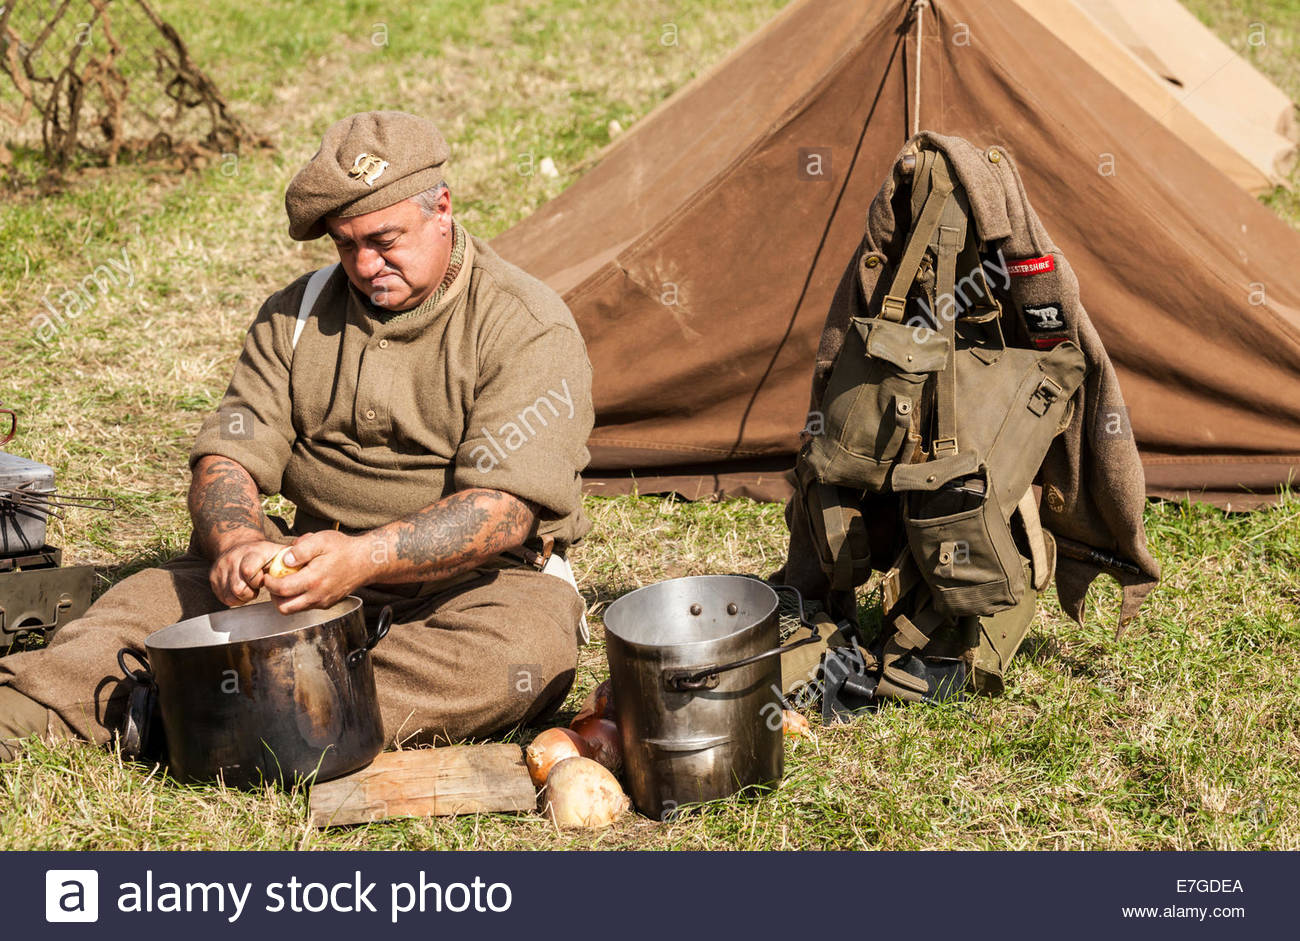 World War Two re-enactment.  British army soldier on kitchen duty peeling vegetables - Stock Image